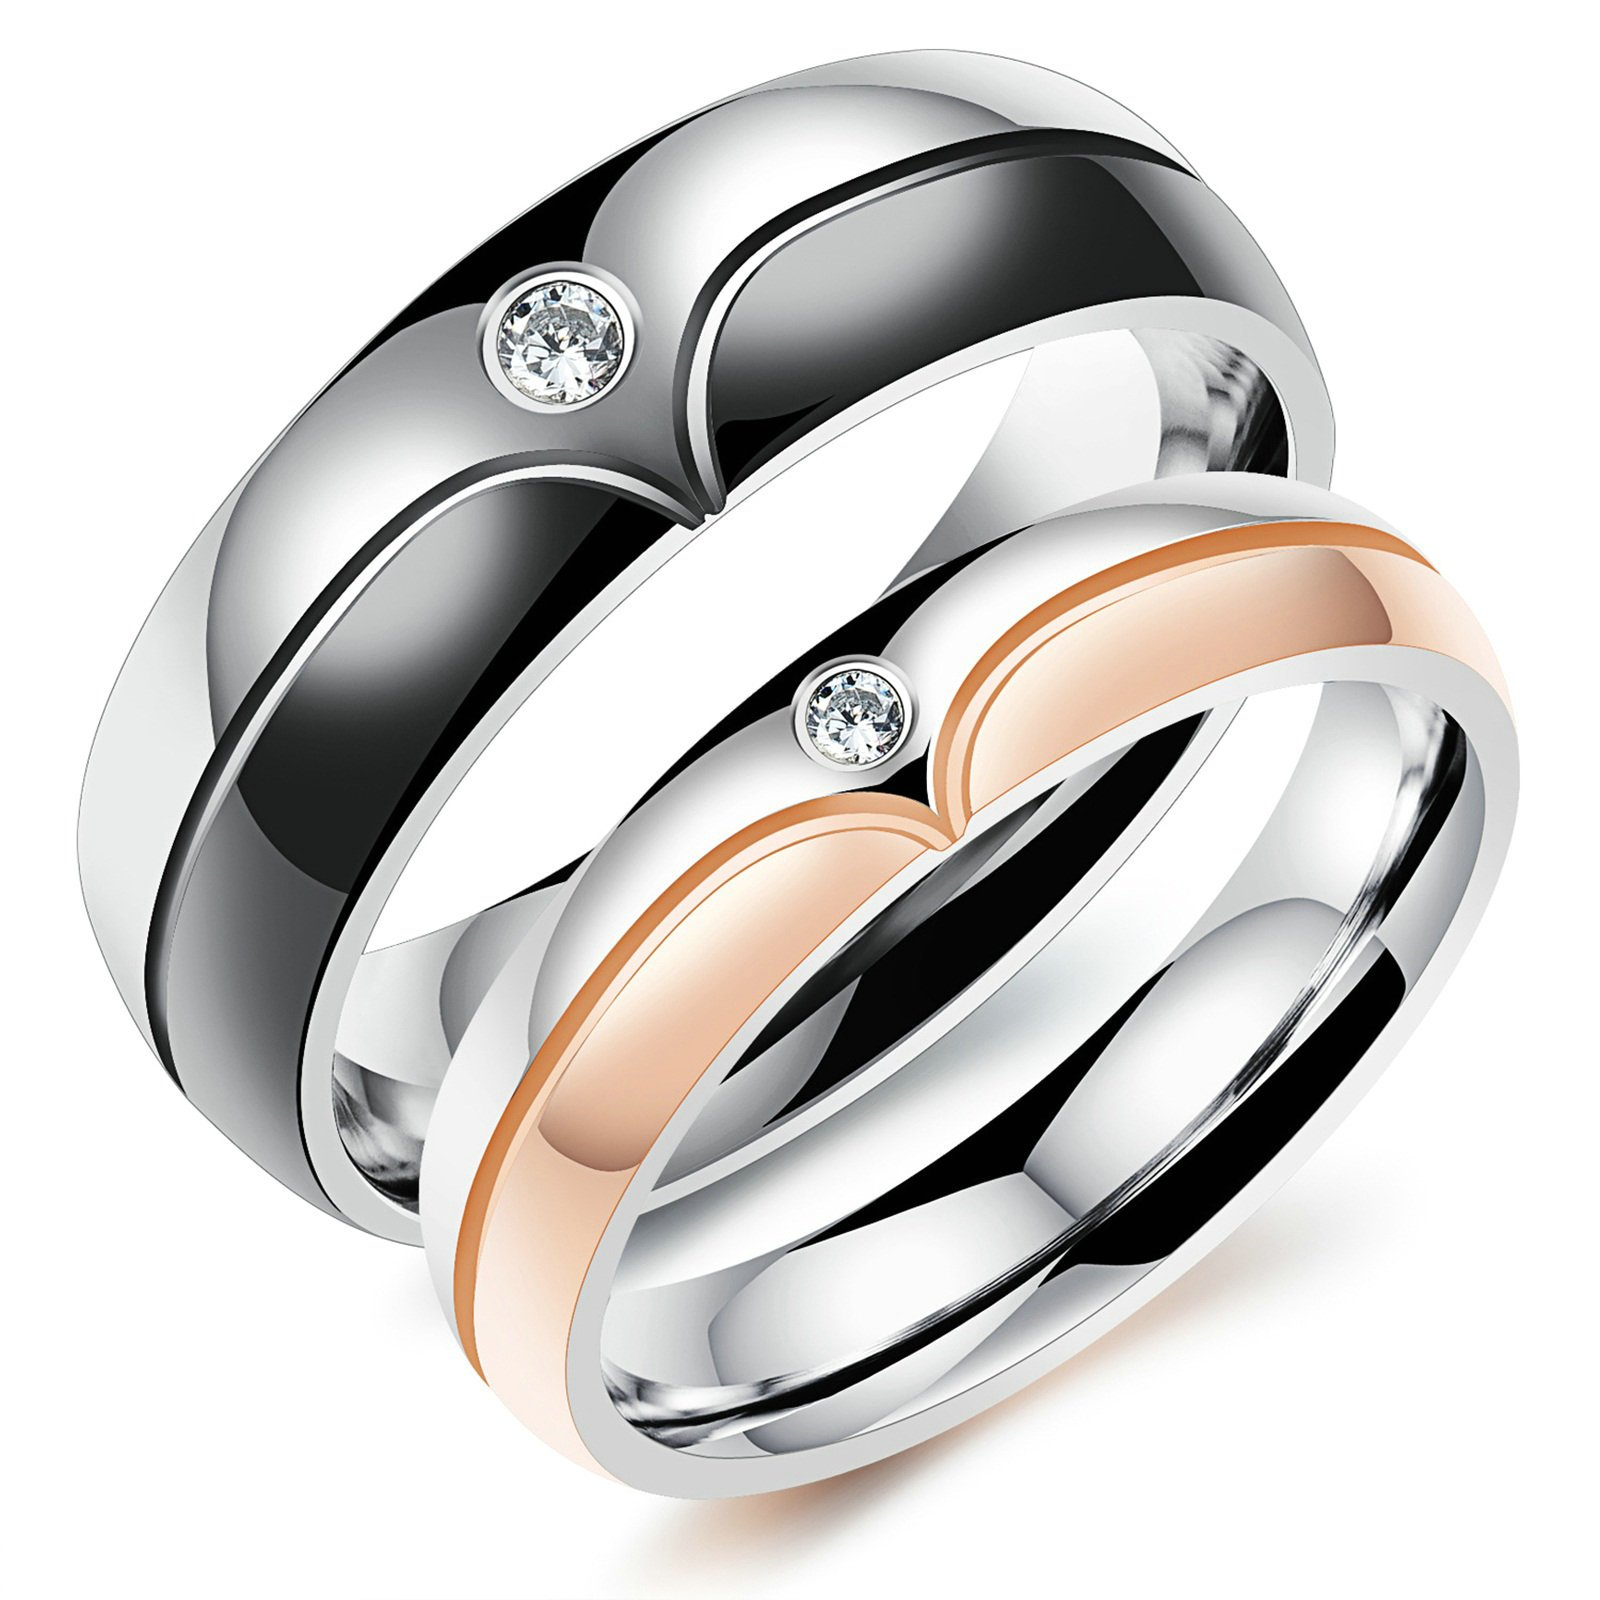 Aooaz Rings For Him And Her Couple Rings Wedding Promise Rings Partner Rings Black Gold Cubic Zirconia Rings With Free Engraving Womens 6 & Men 7 Novelty Jewelry Gift